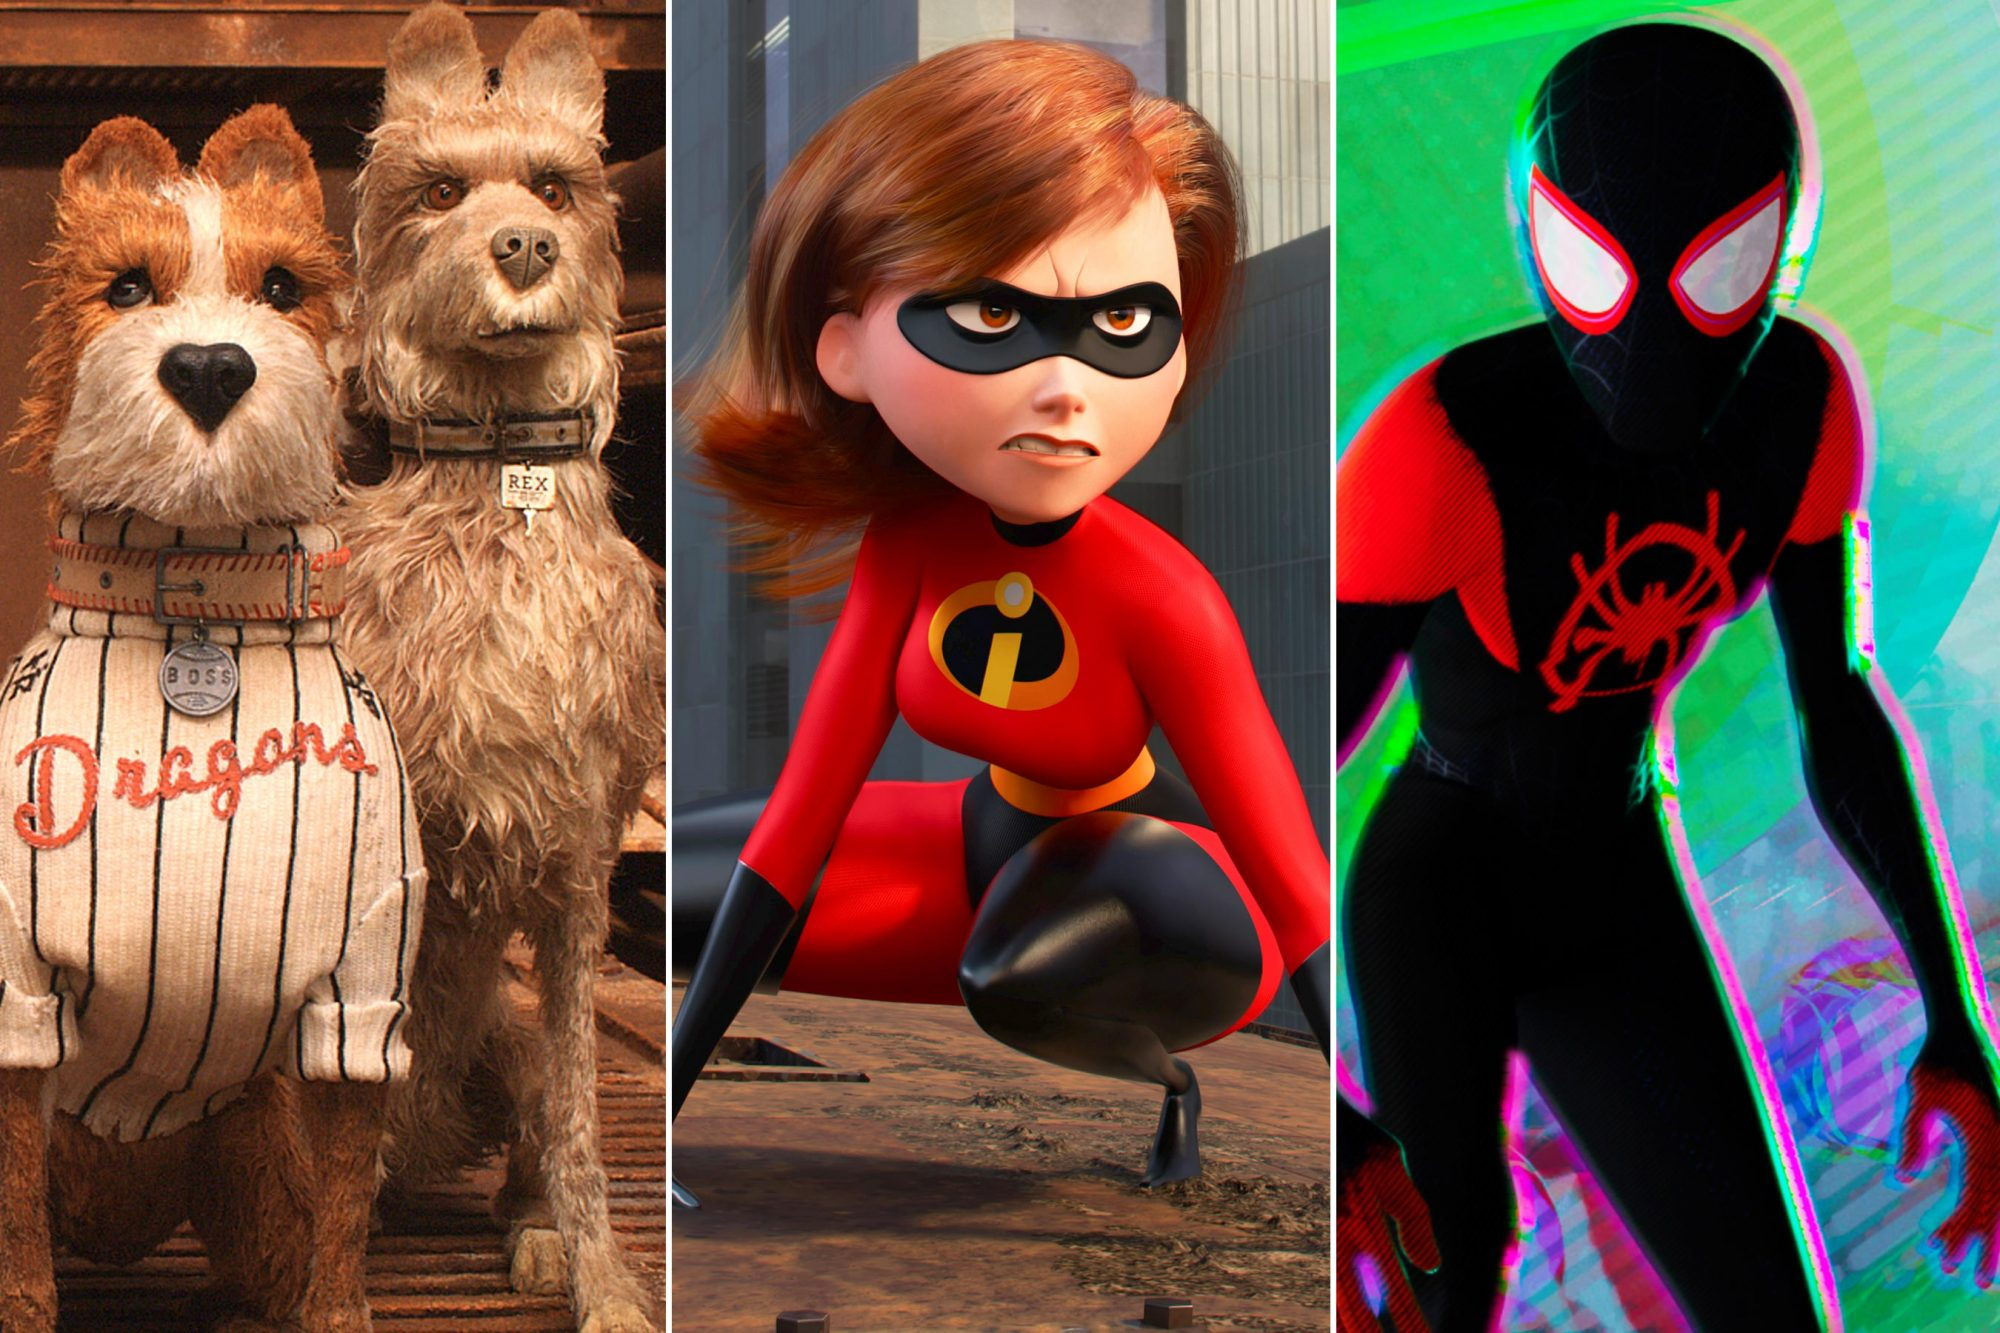 Isle-of-Dogs-Incredibles-2-Spiderverse